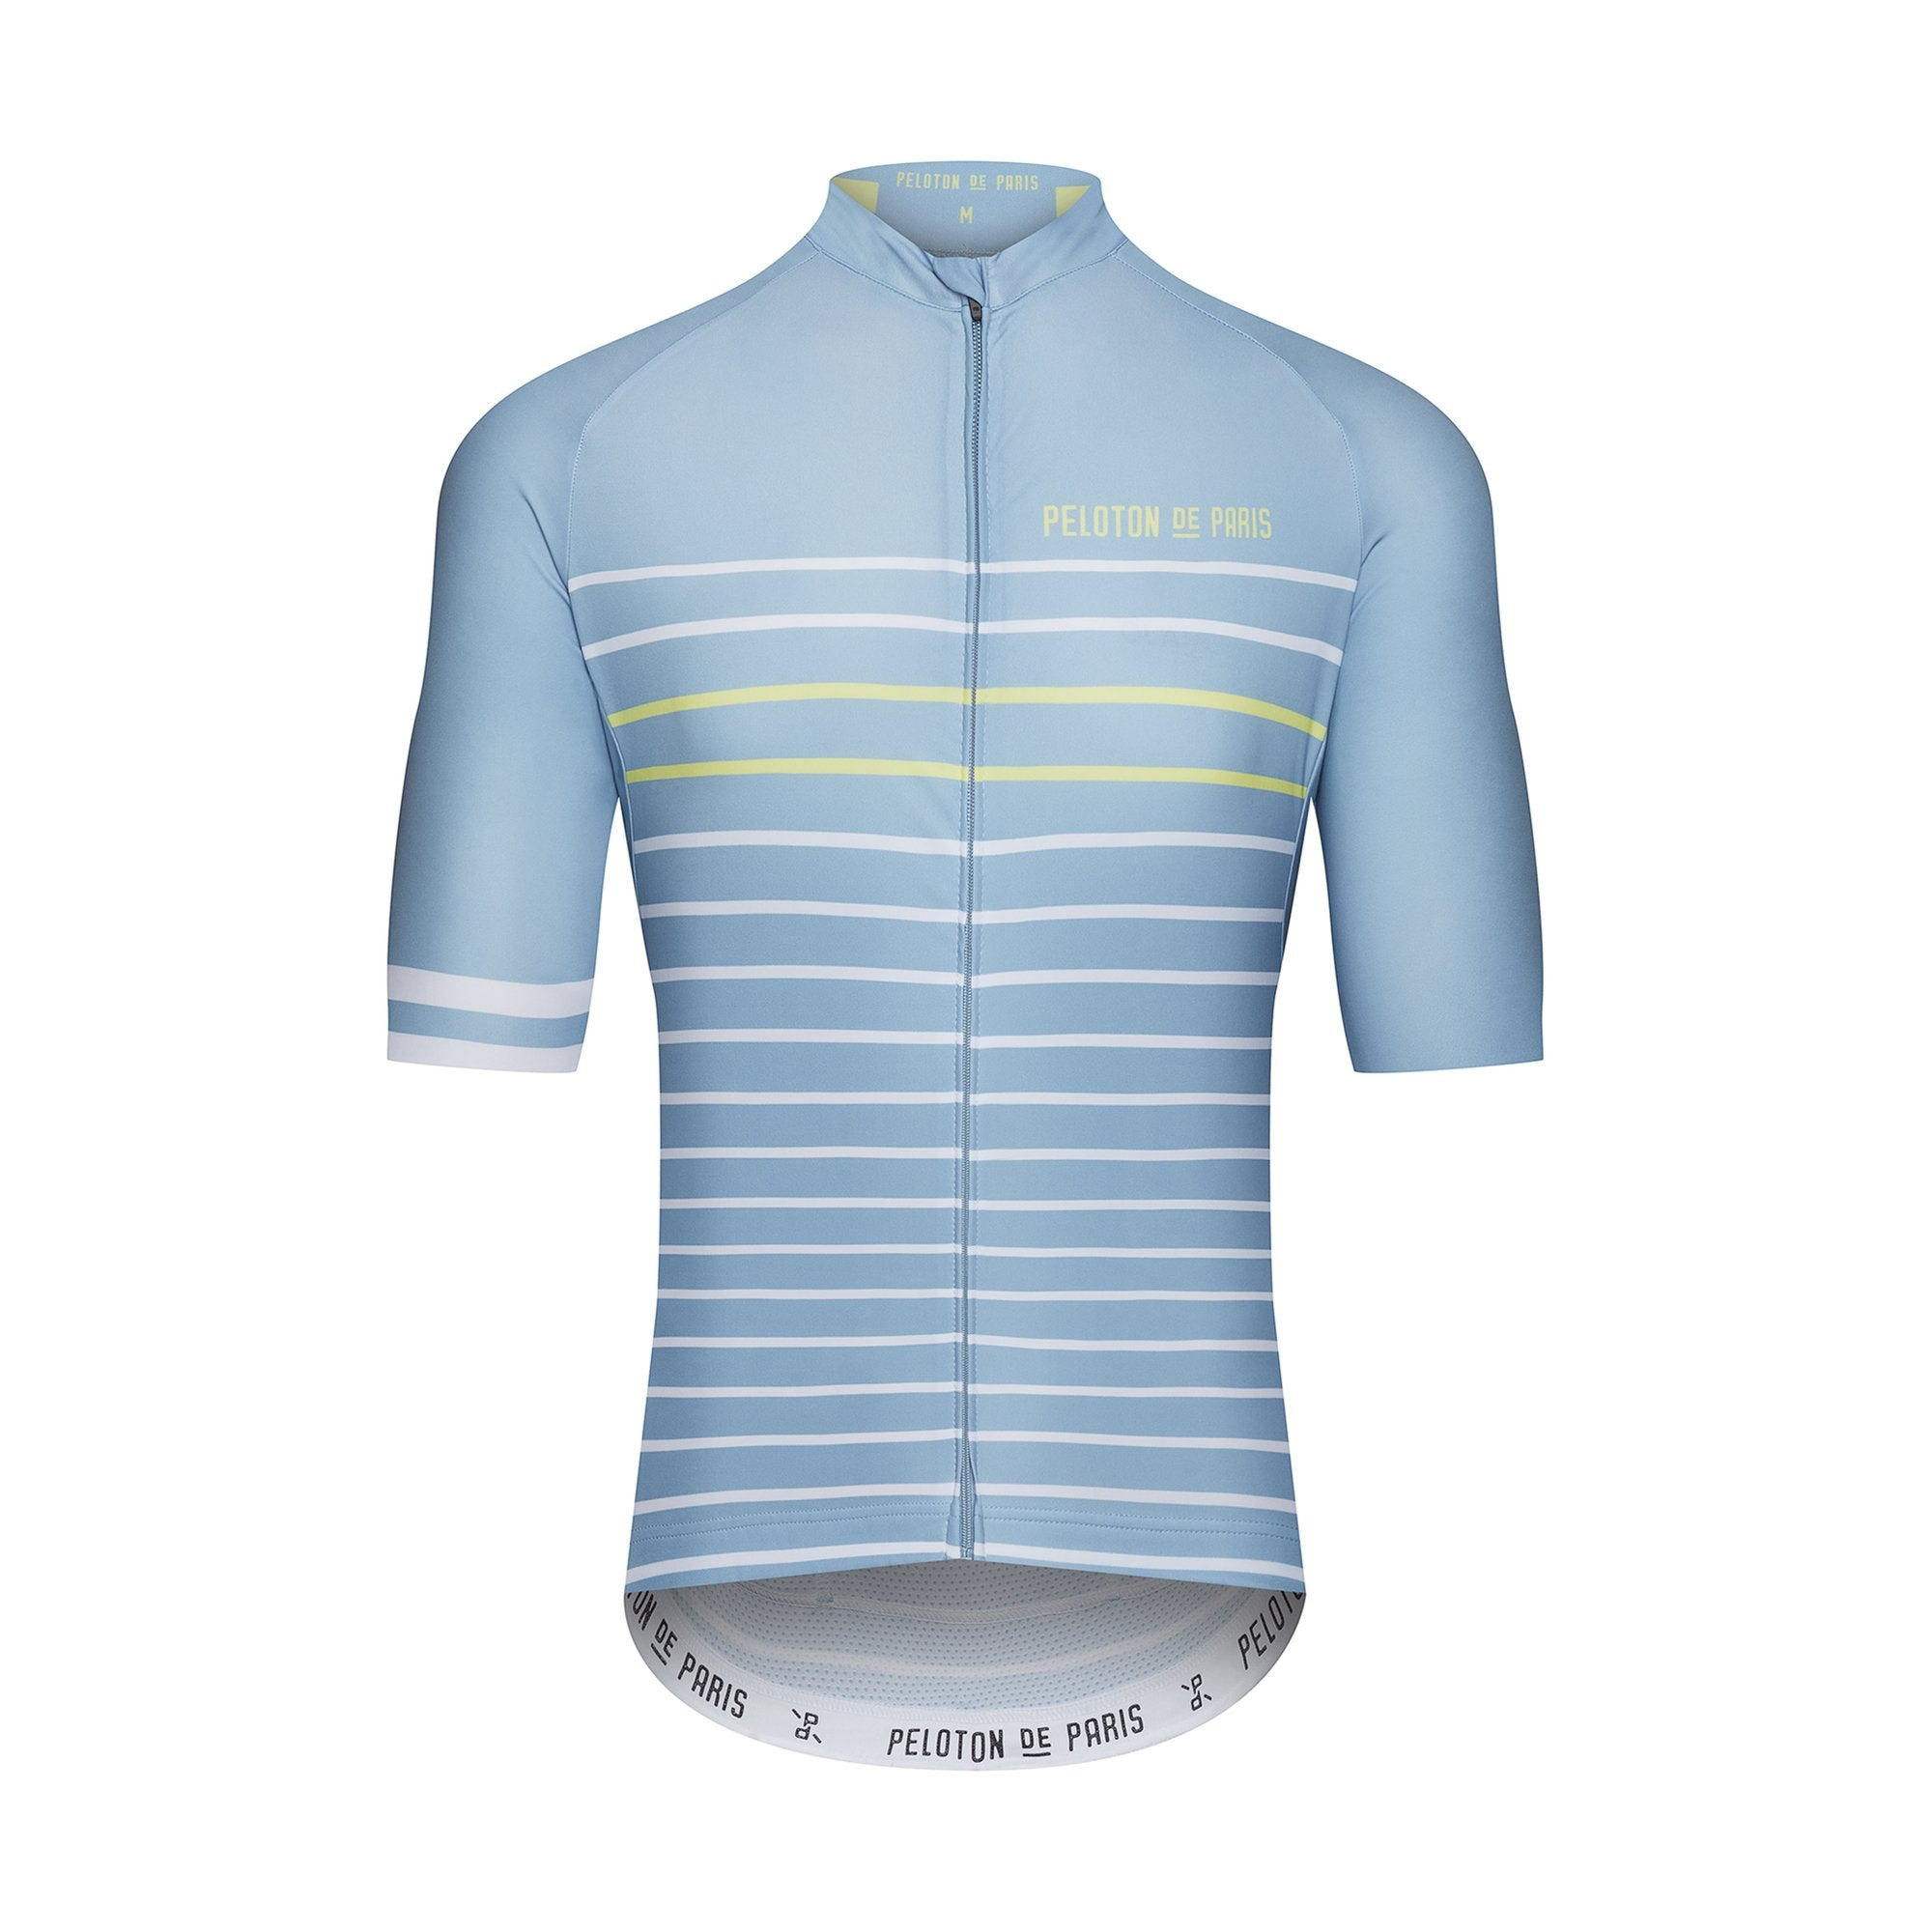 Peloton de Paris Classic Stripe Blue Stone/Pineapple Domestique サイクルジャージ  | CYCLISM